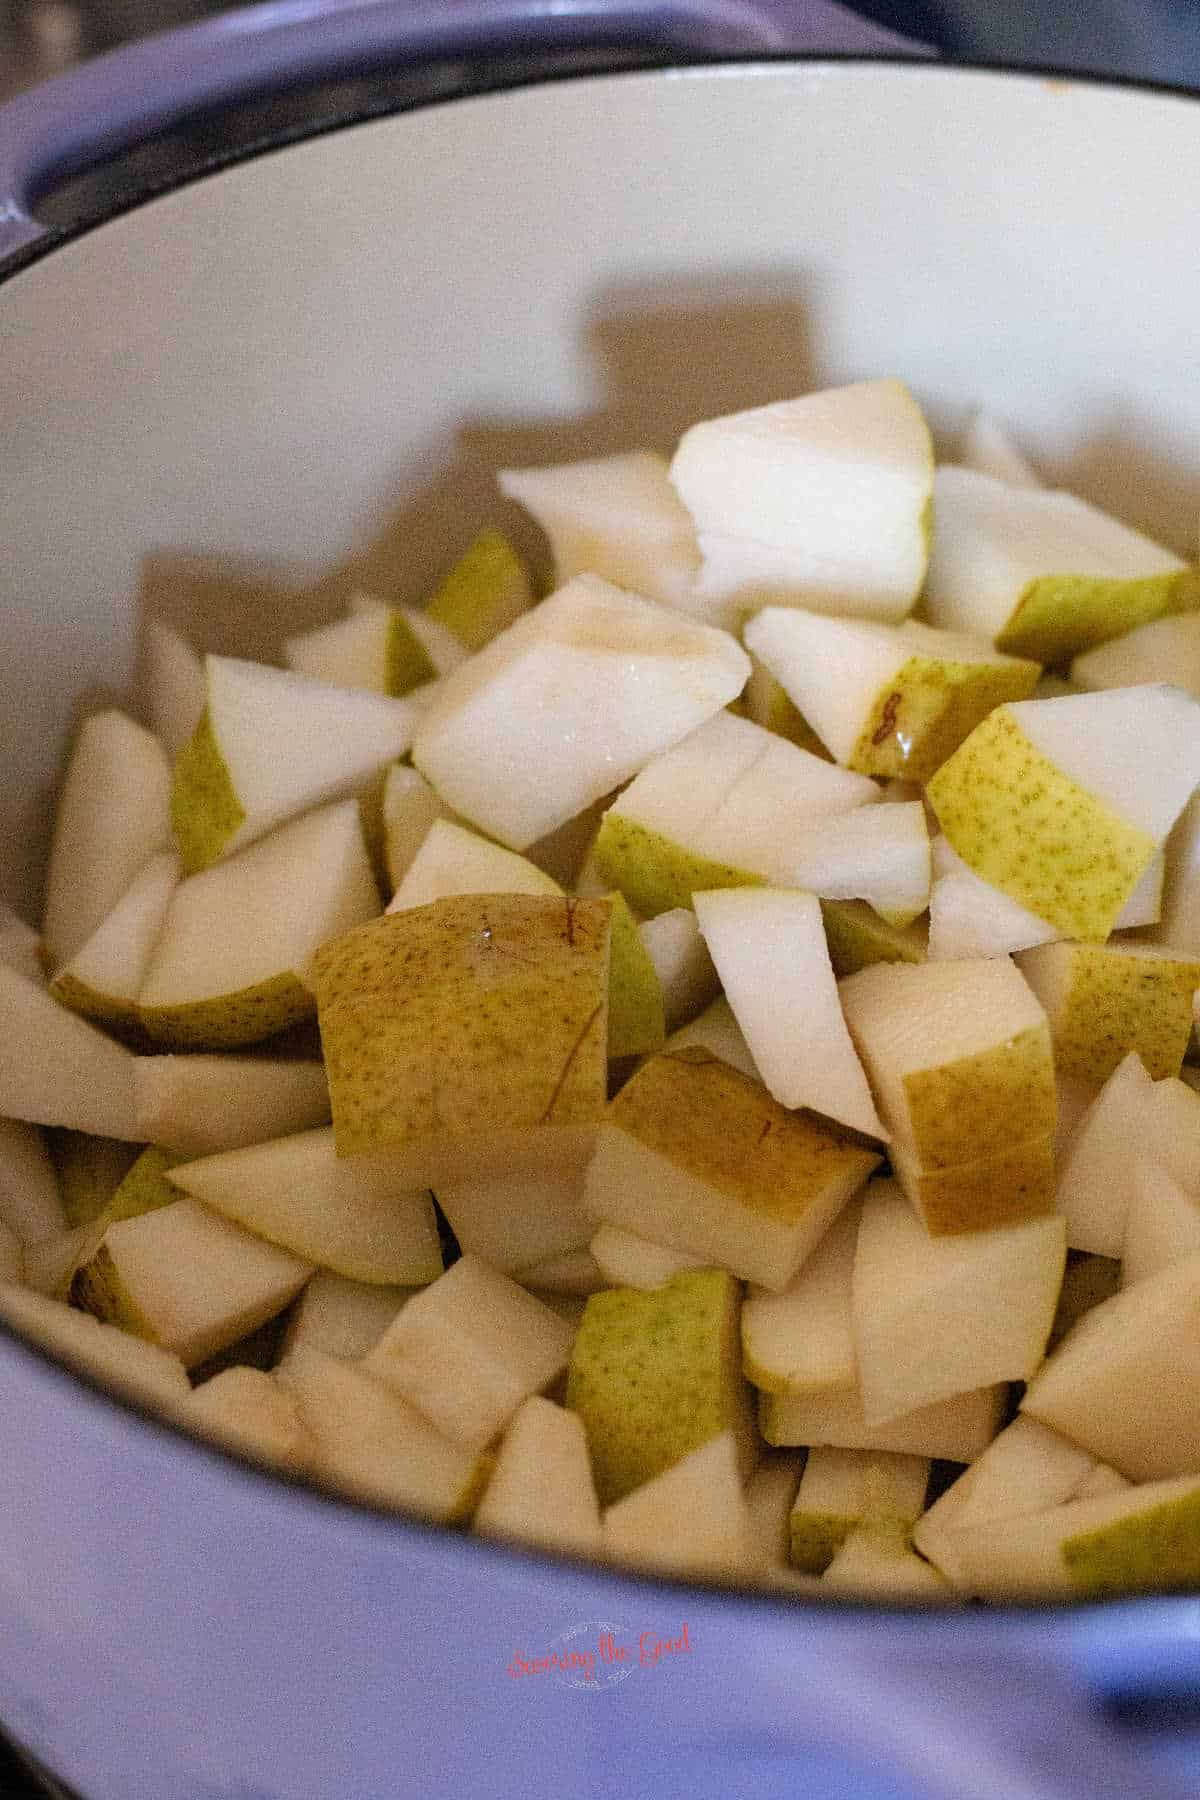 cup up pears in a pan for sauce